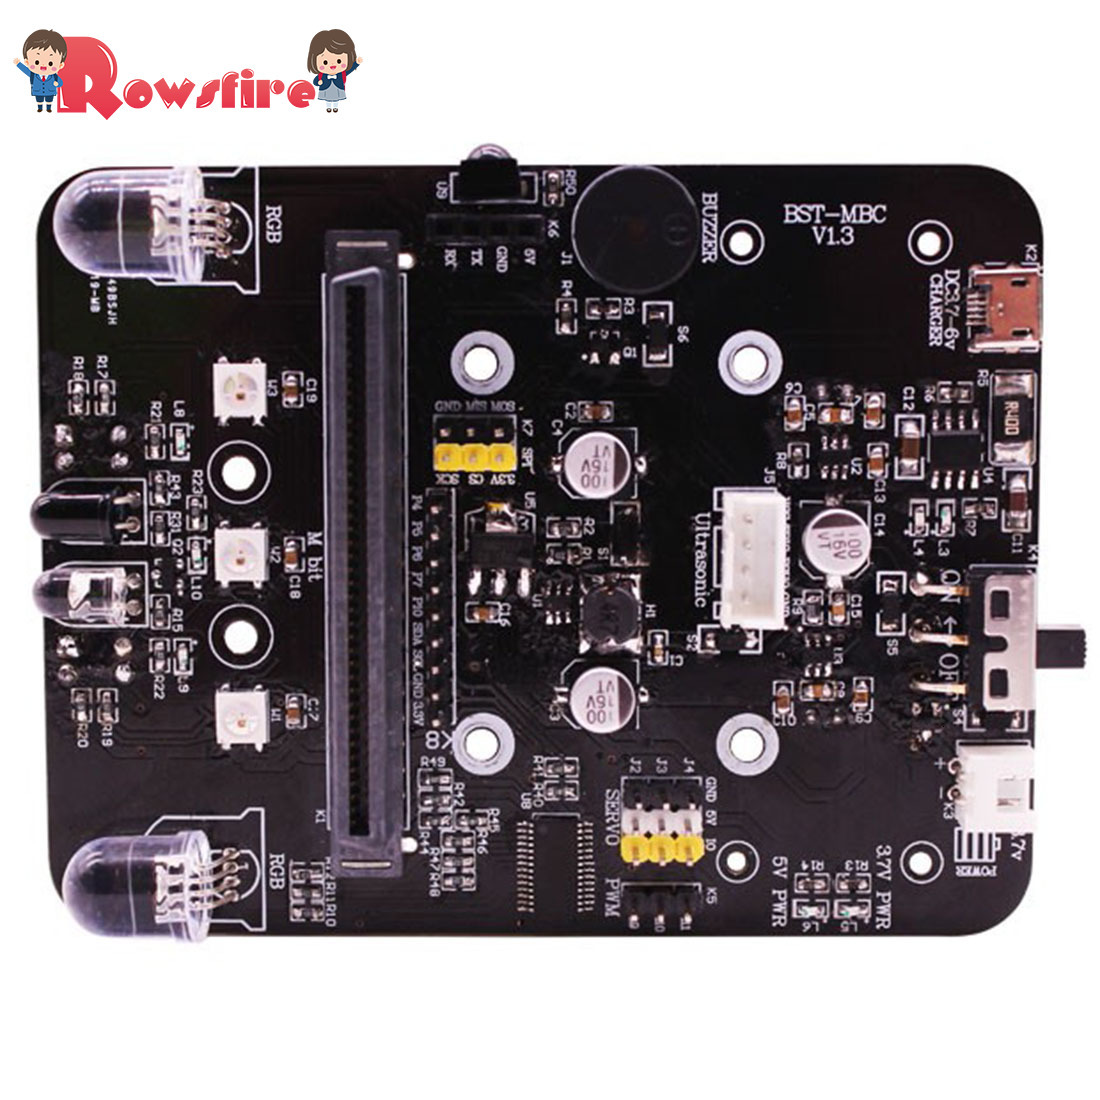 High Recommend 1 Pcs Multifunction Expansion Board Learning Kit For Stem Maker Education Just The Board Kit